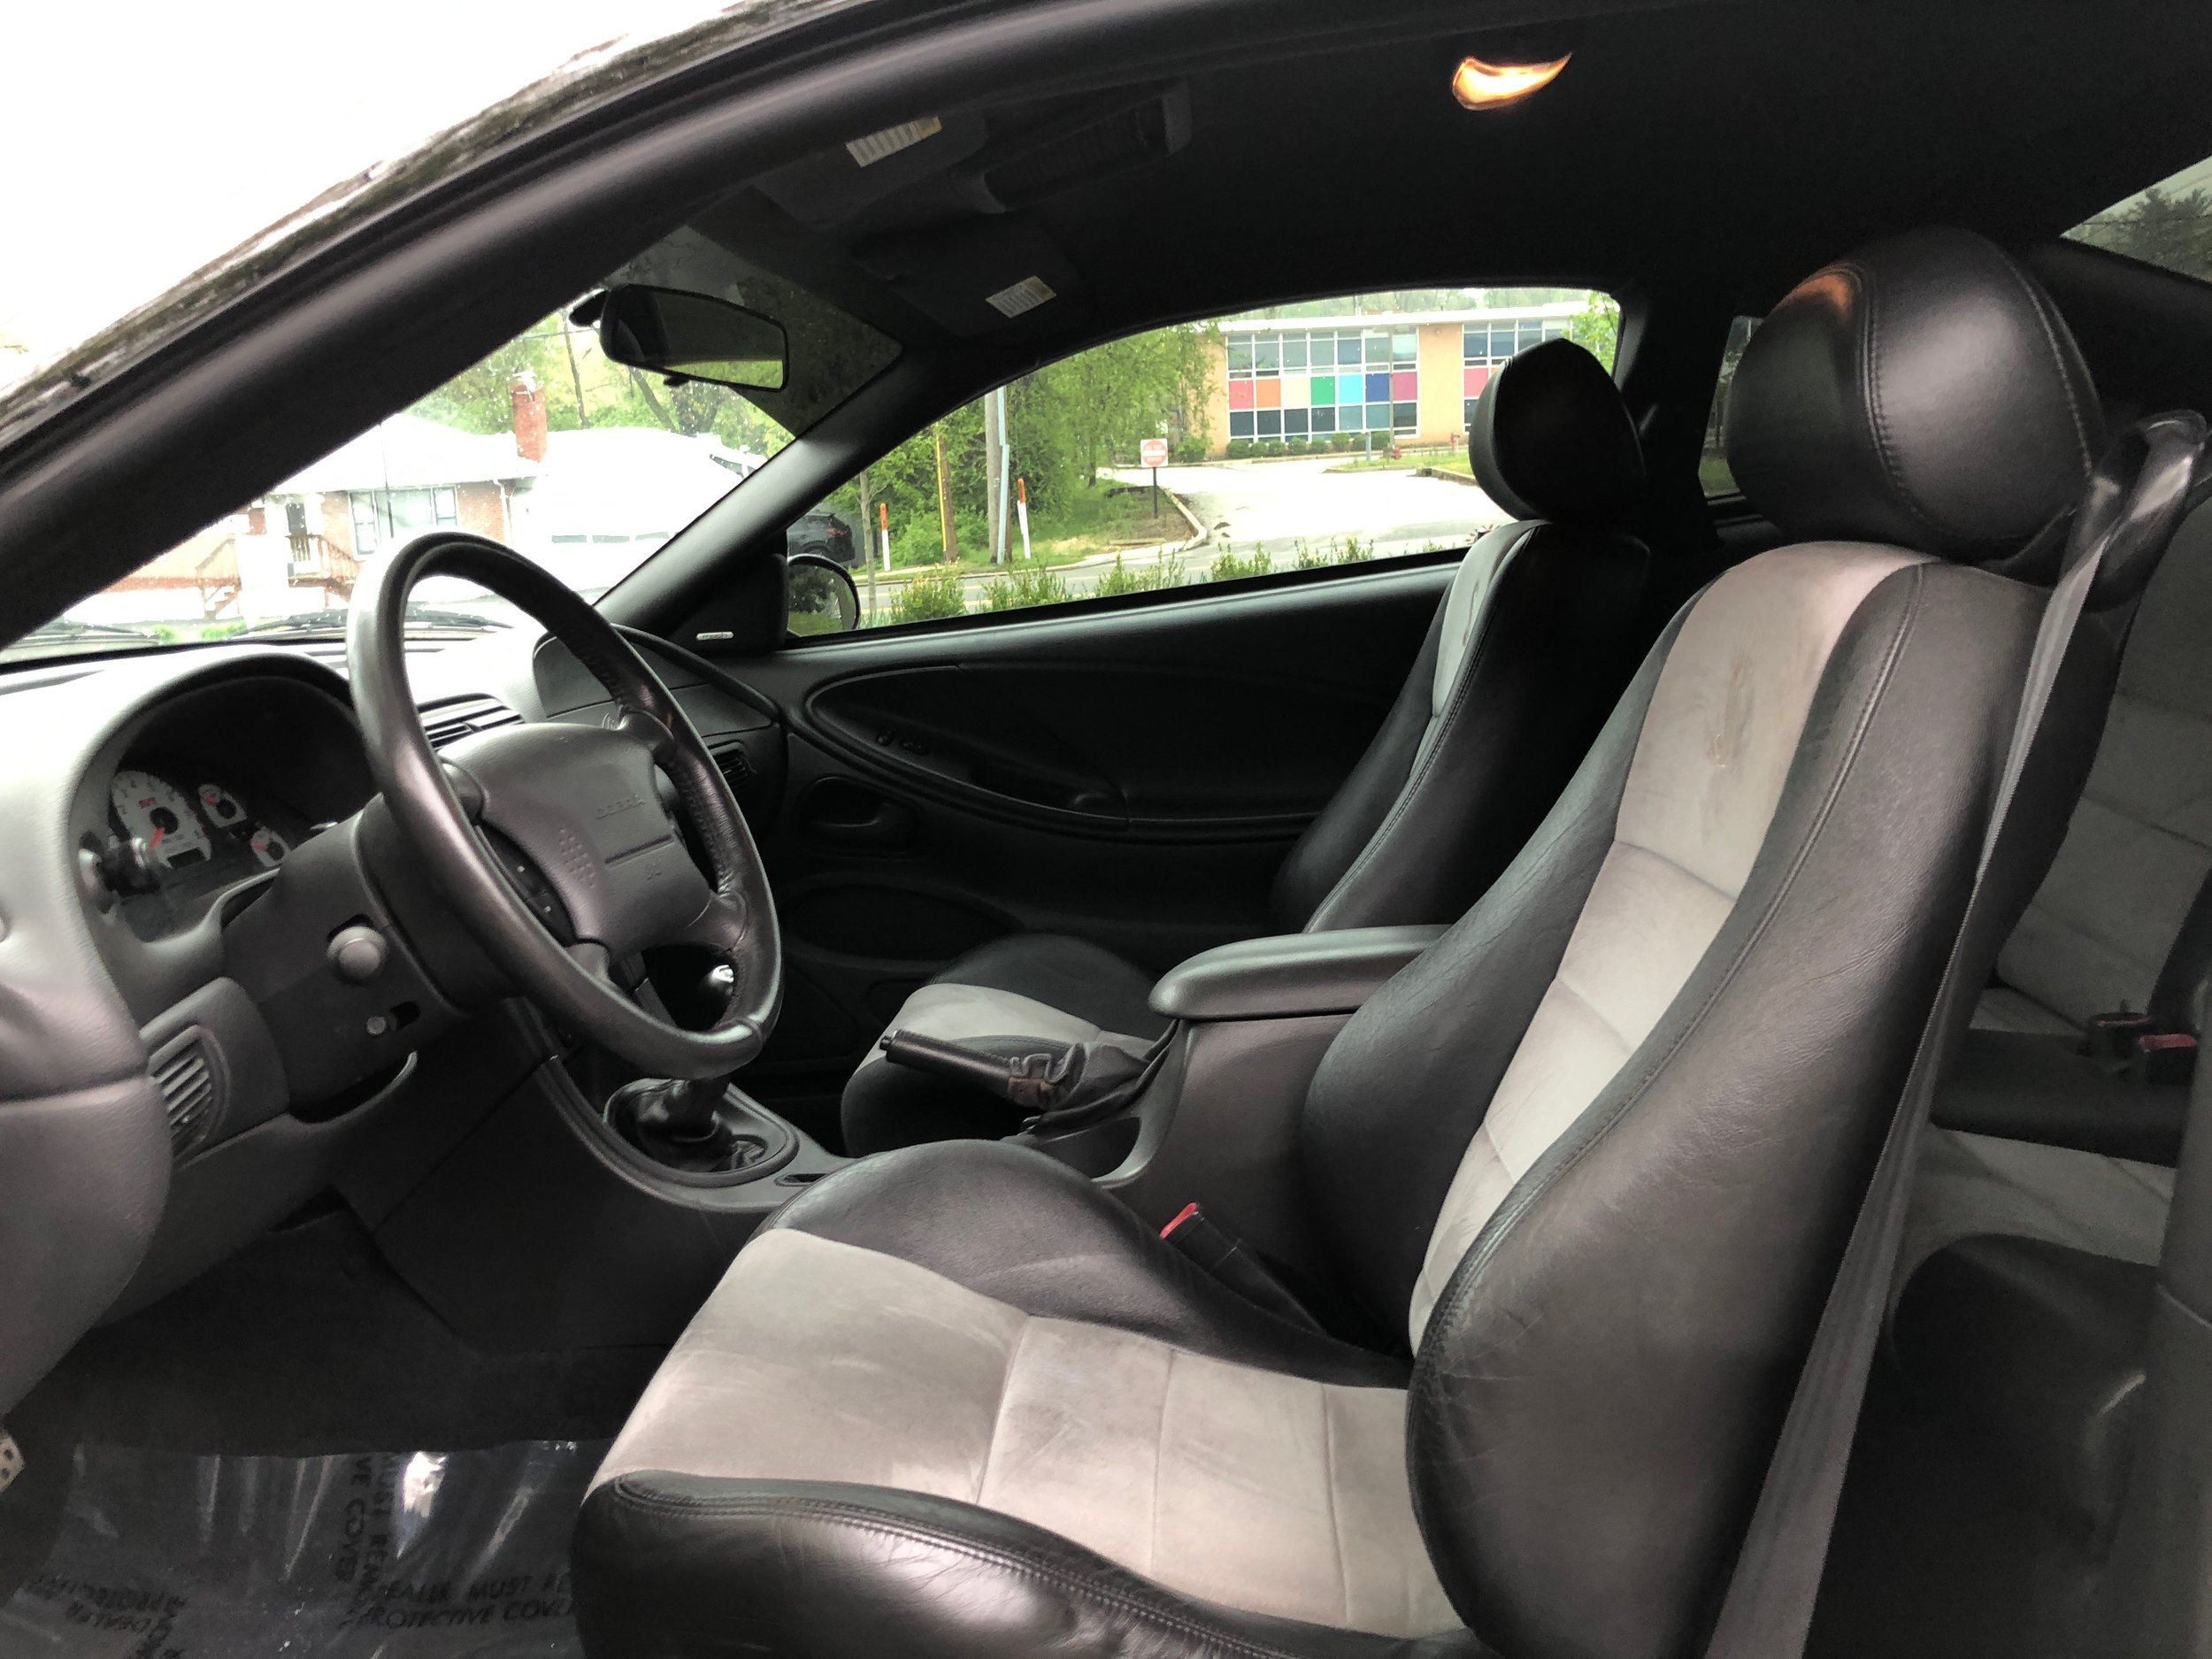 2003 Ford Mustang Svt Cobra Car Interior